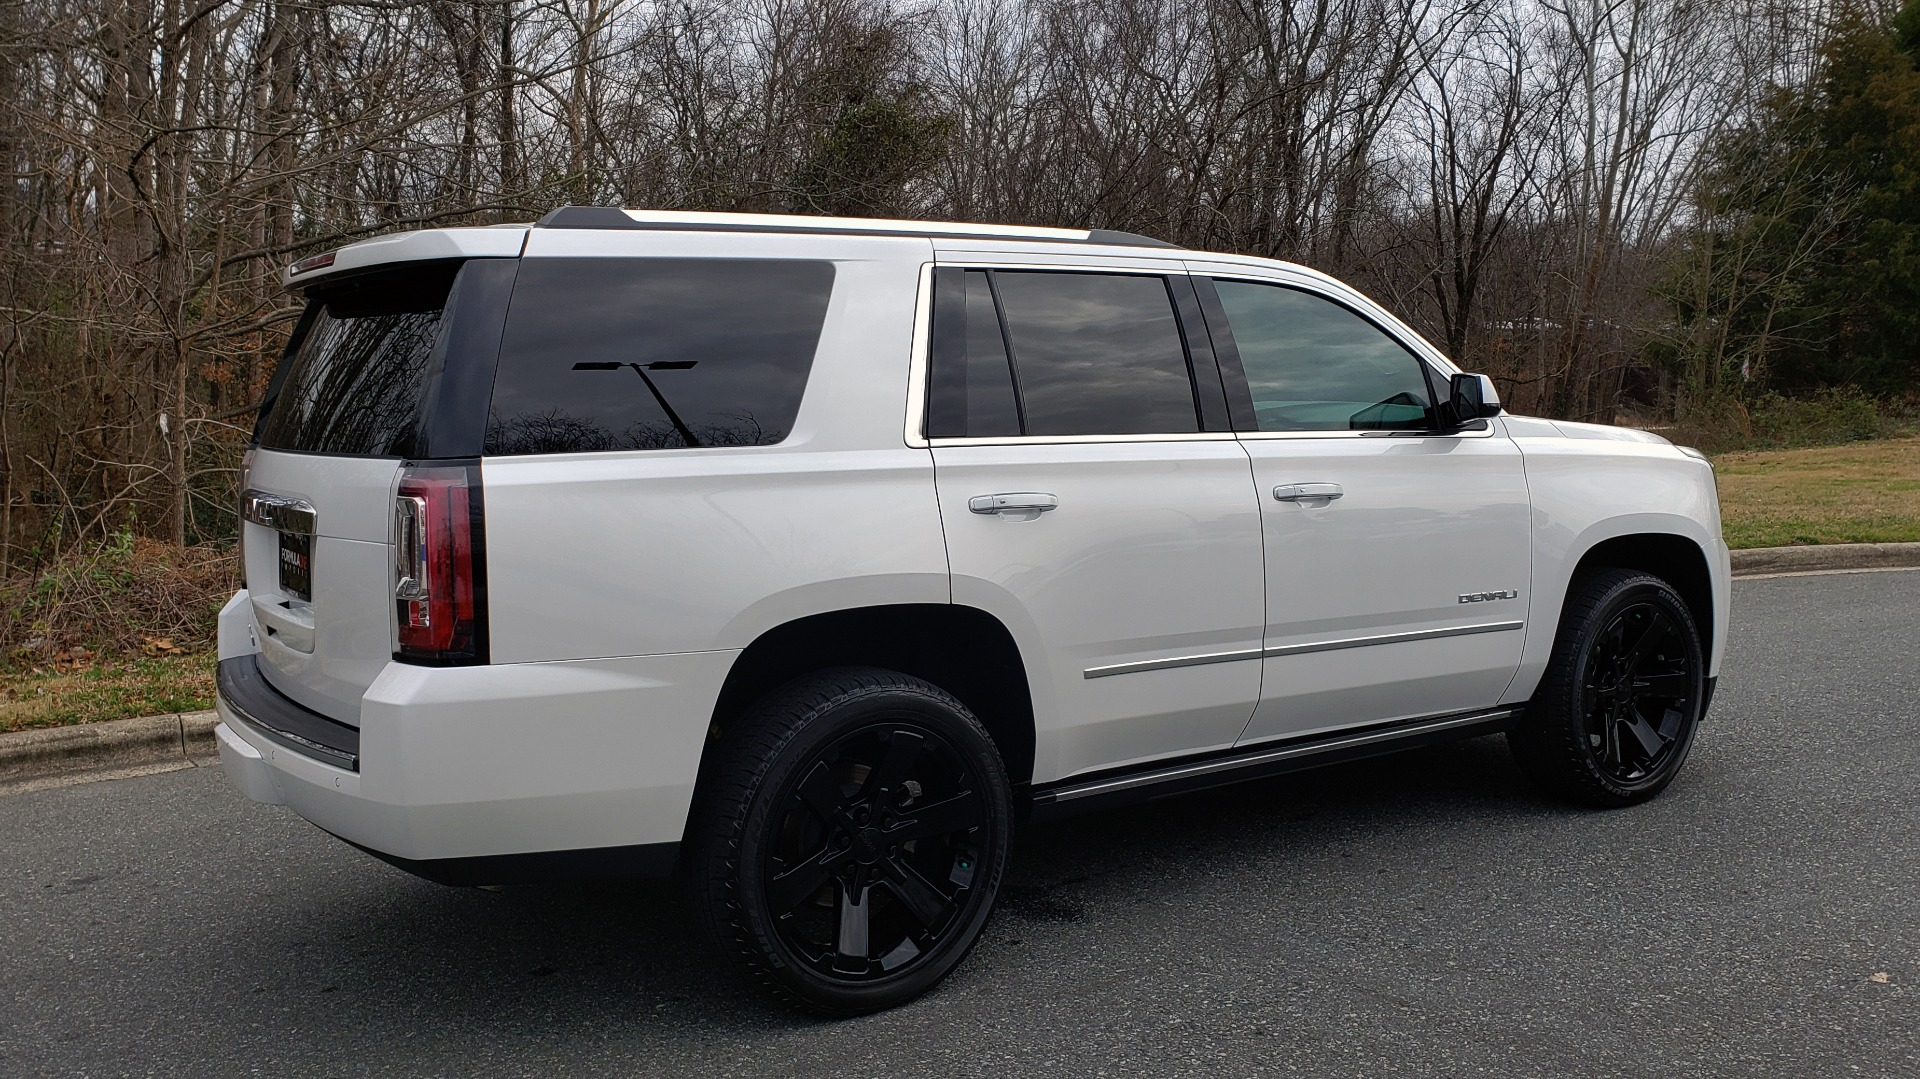 Used 2018 GMC YUKON DENALI 4WD / NAV / SUNROOF / BOSE / 3-ROW / REARVIEW for sale Sold at Formula Imports in Charlotte NC 28227 6